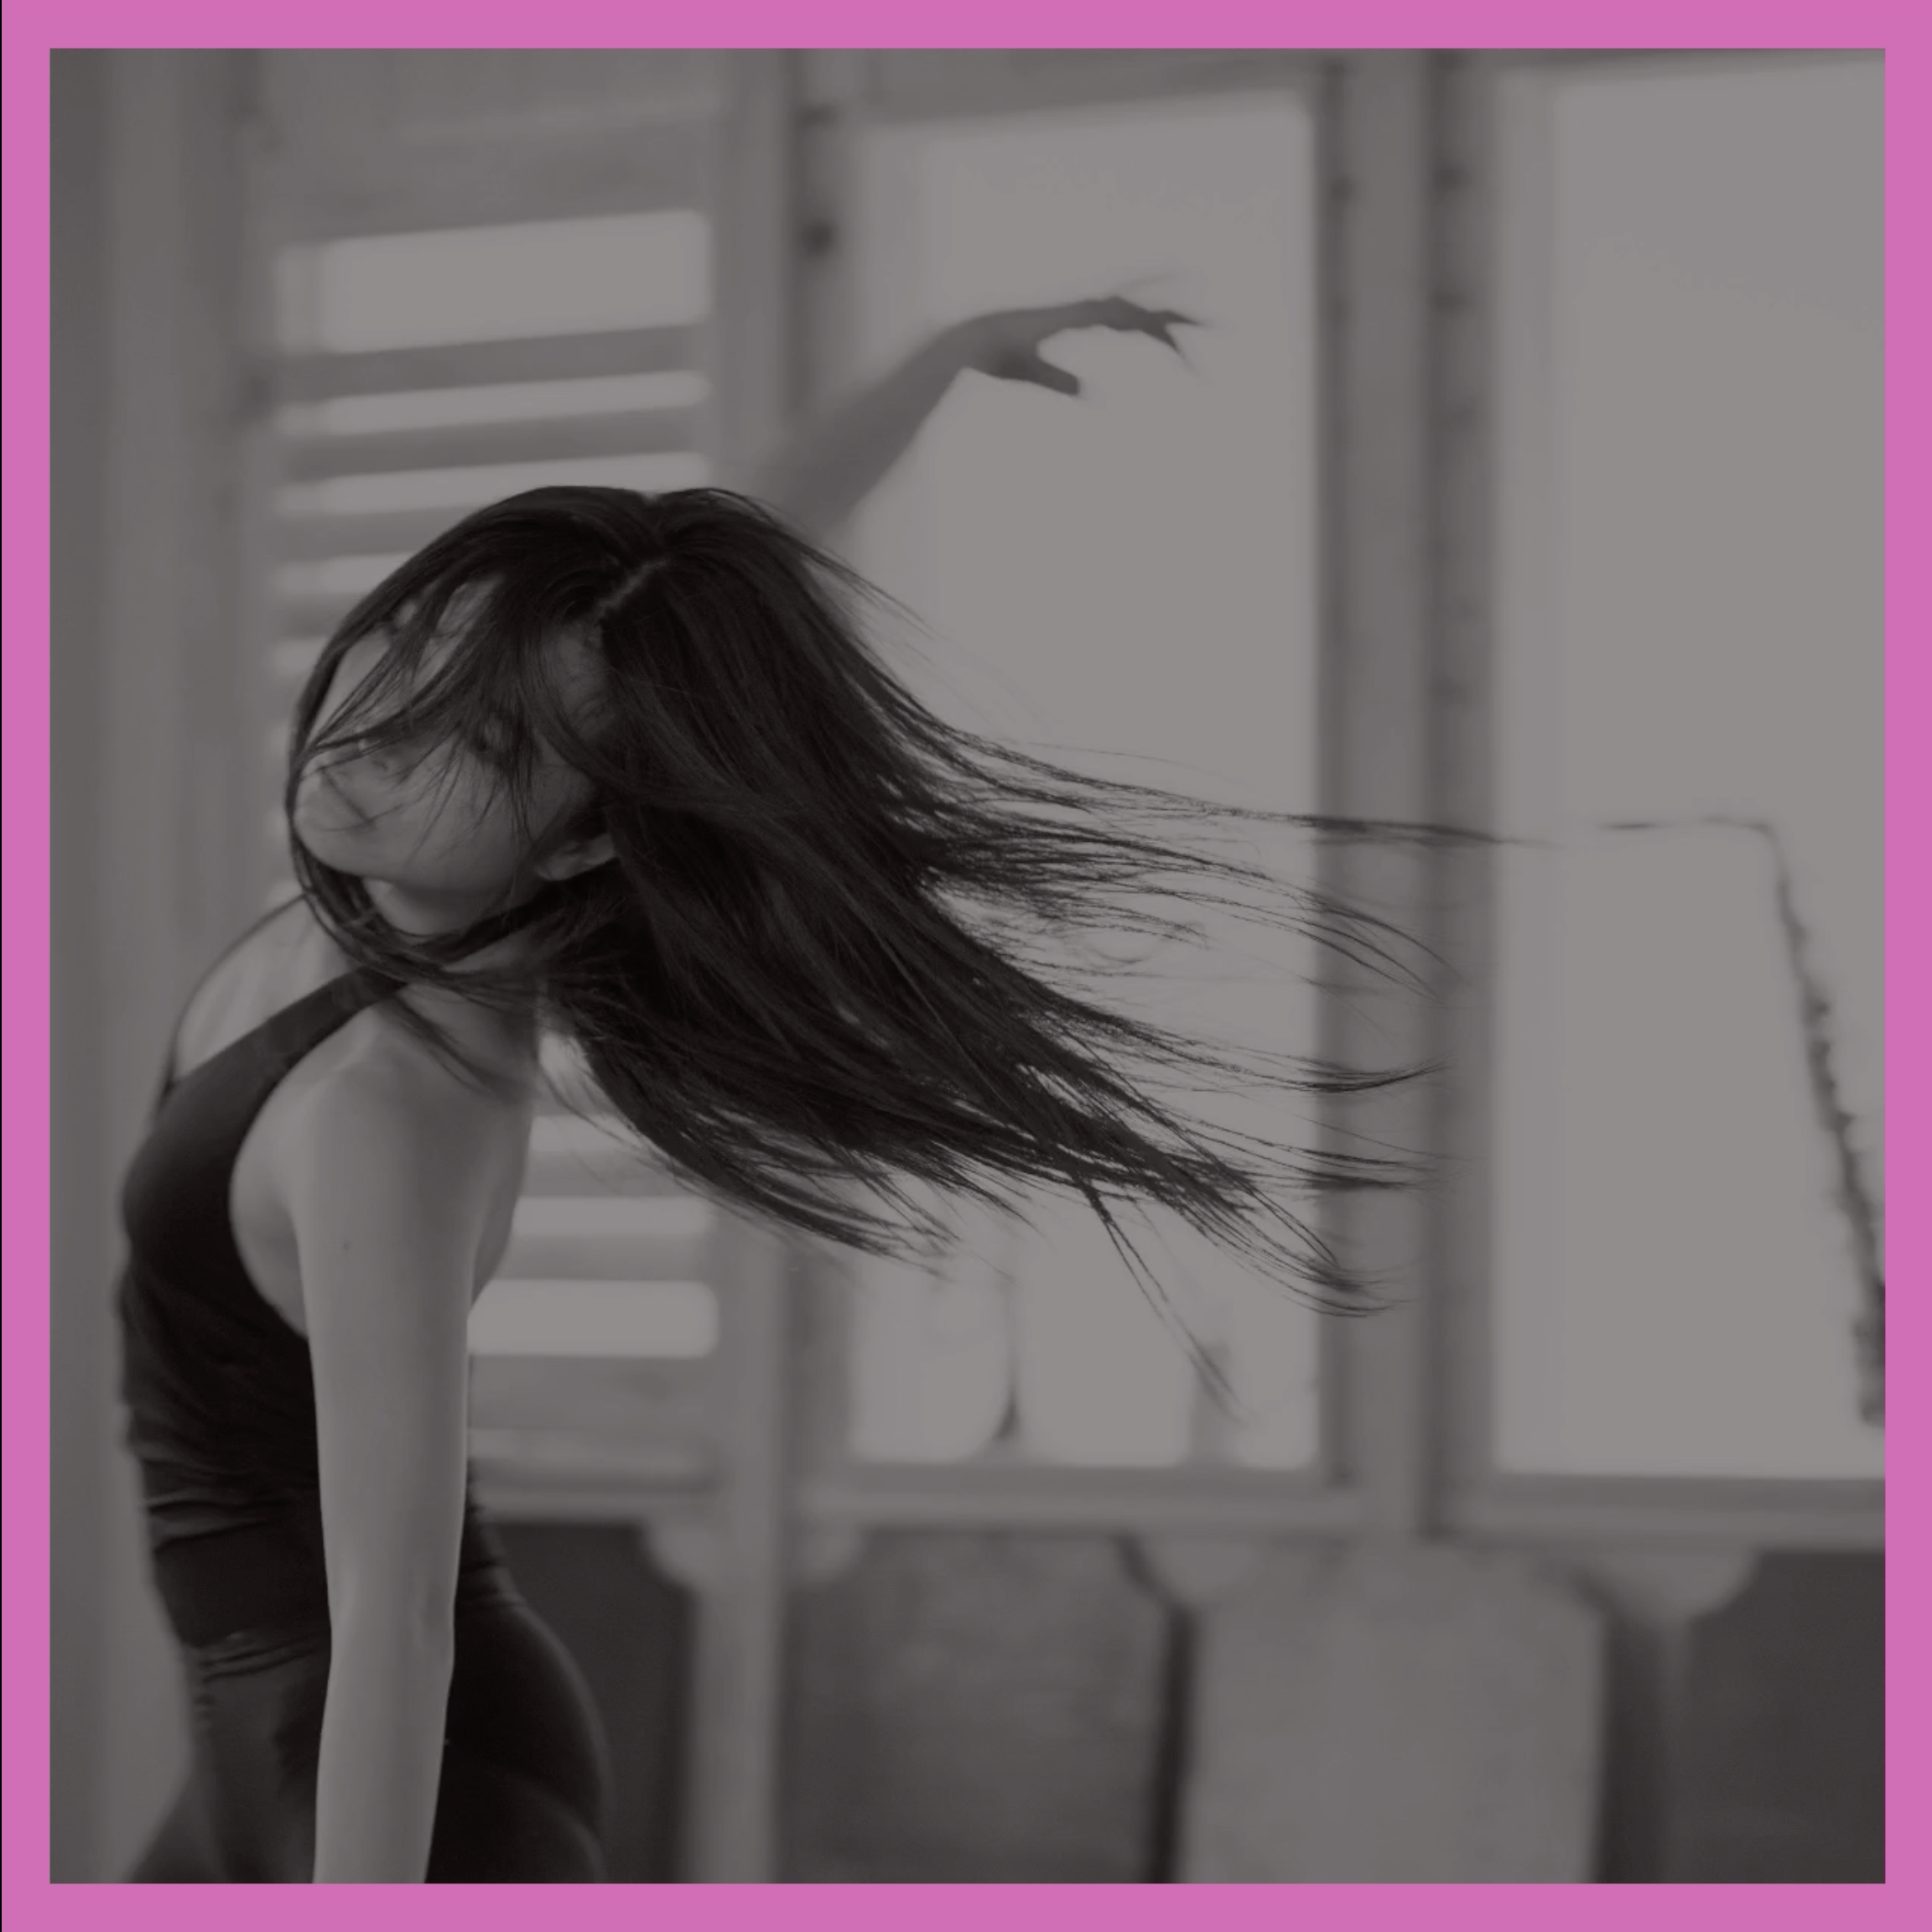 An image of a student doing contemporary dance